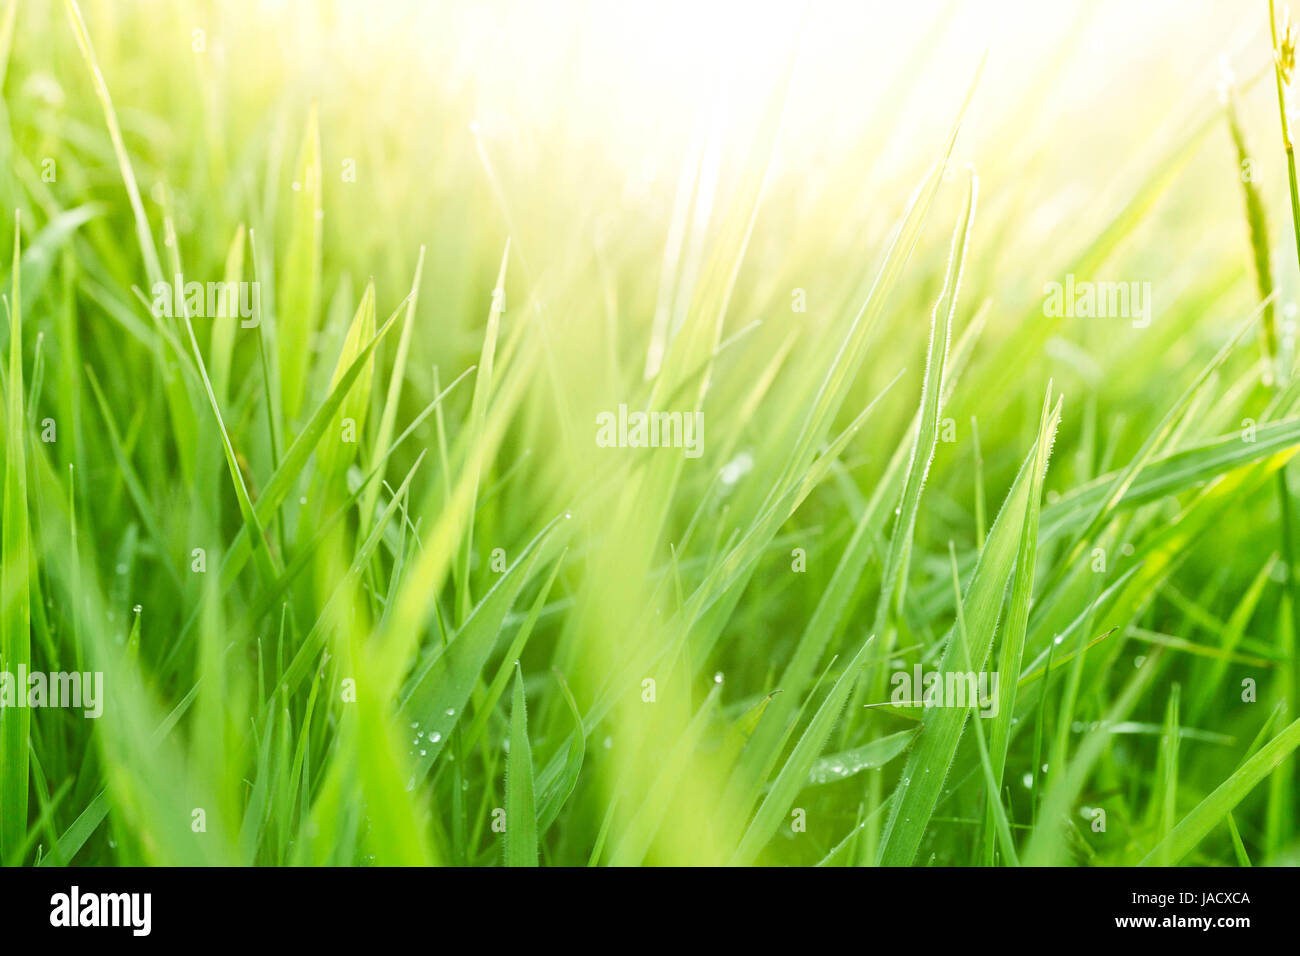 Green Grass Background Hd Images